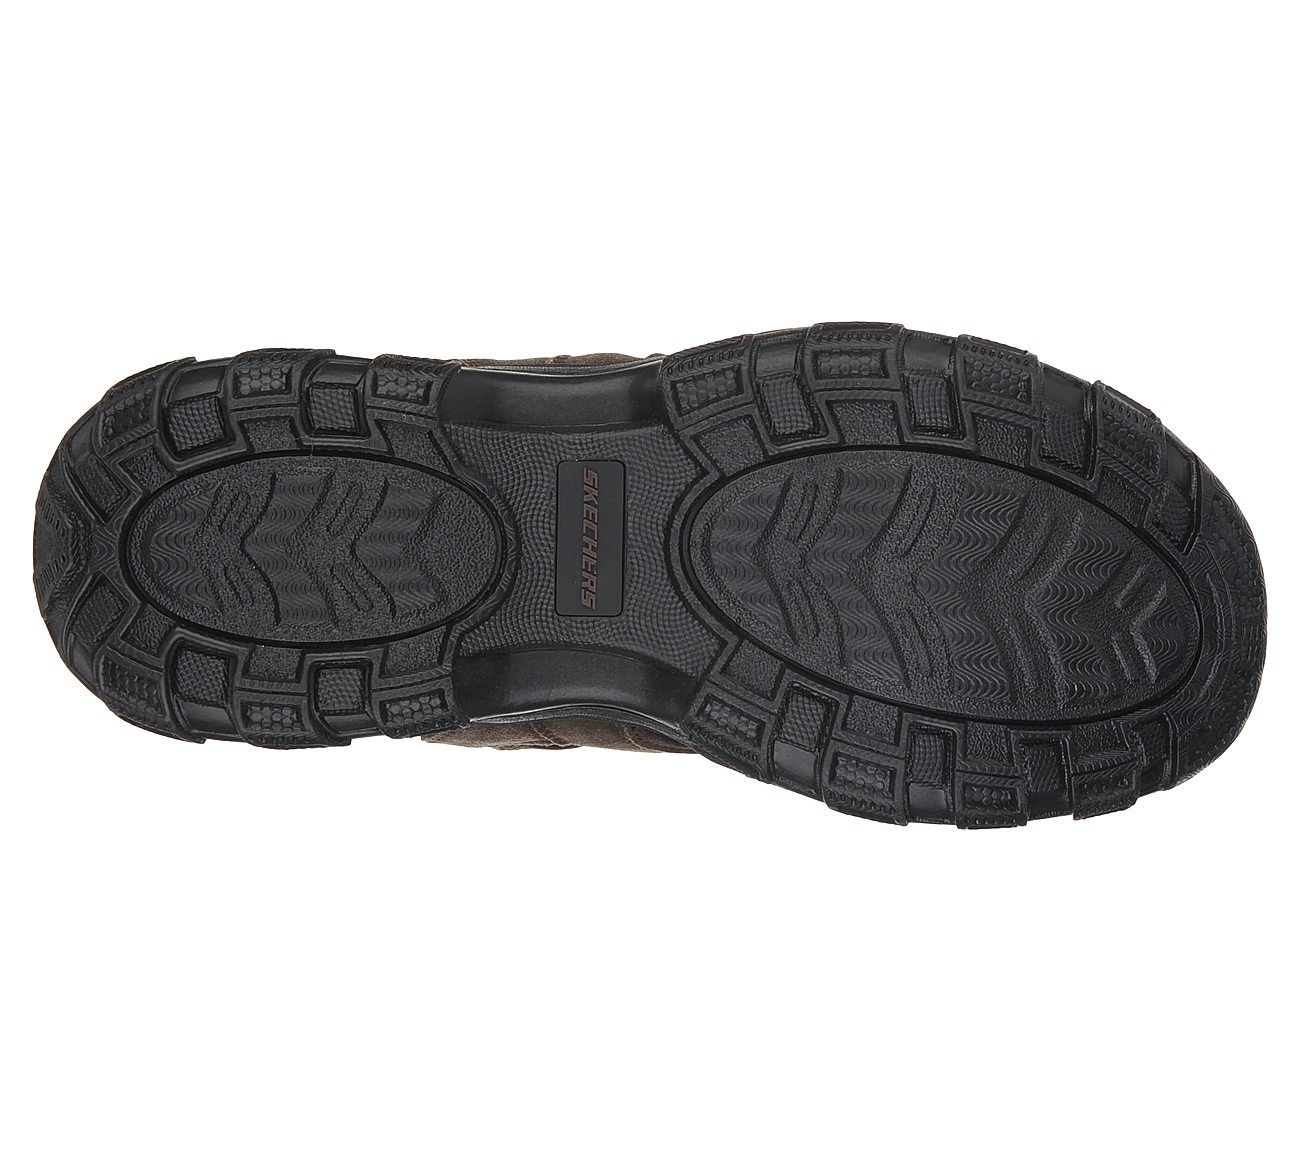 d82787da2439 Buy SKECHERS Relaxed Fit  Gander - Selmo SKECHERS Relaxed Fit Shoes ...